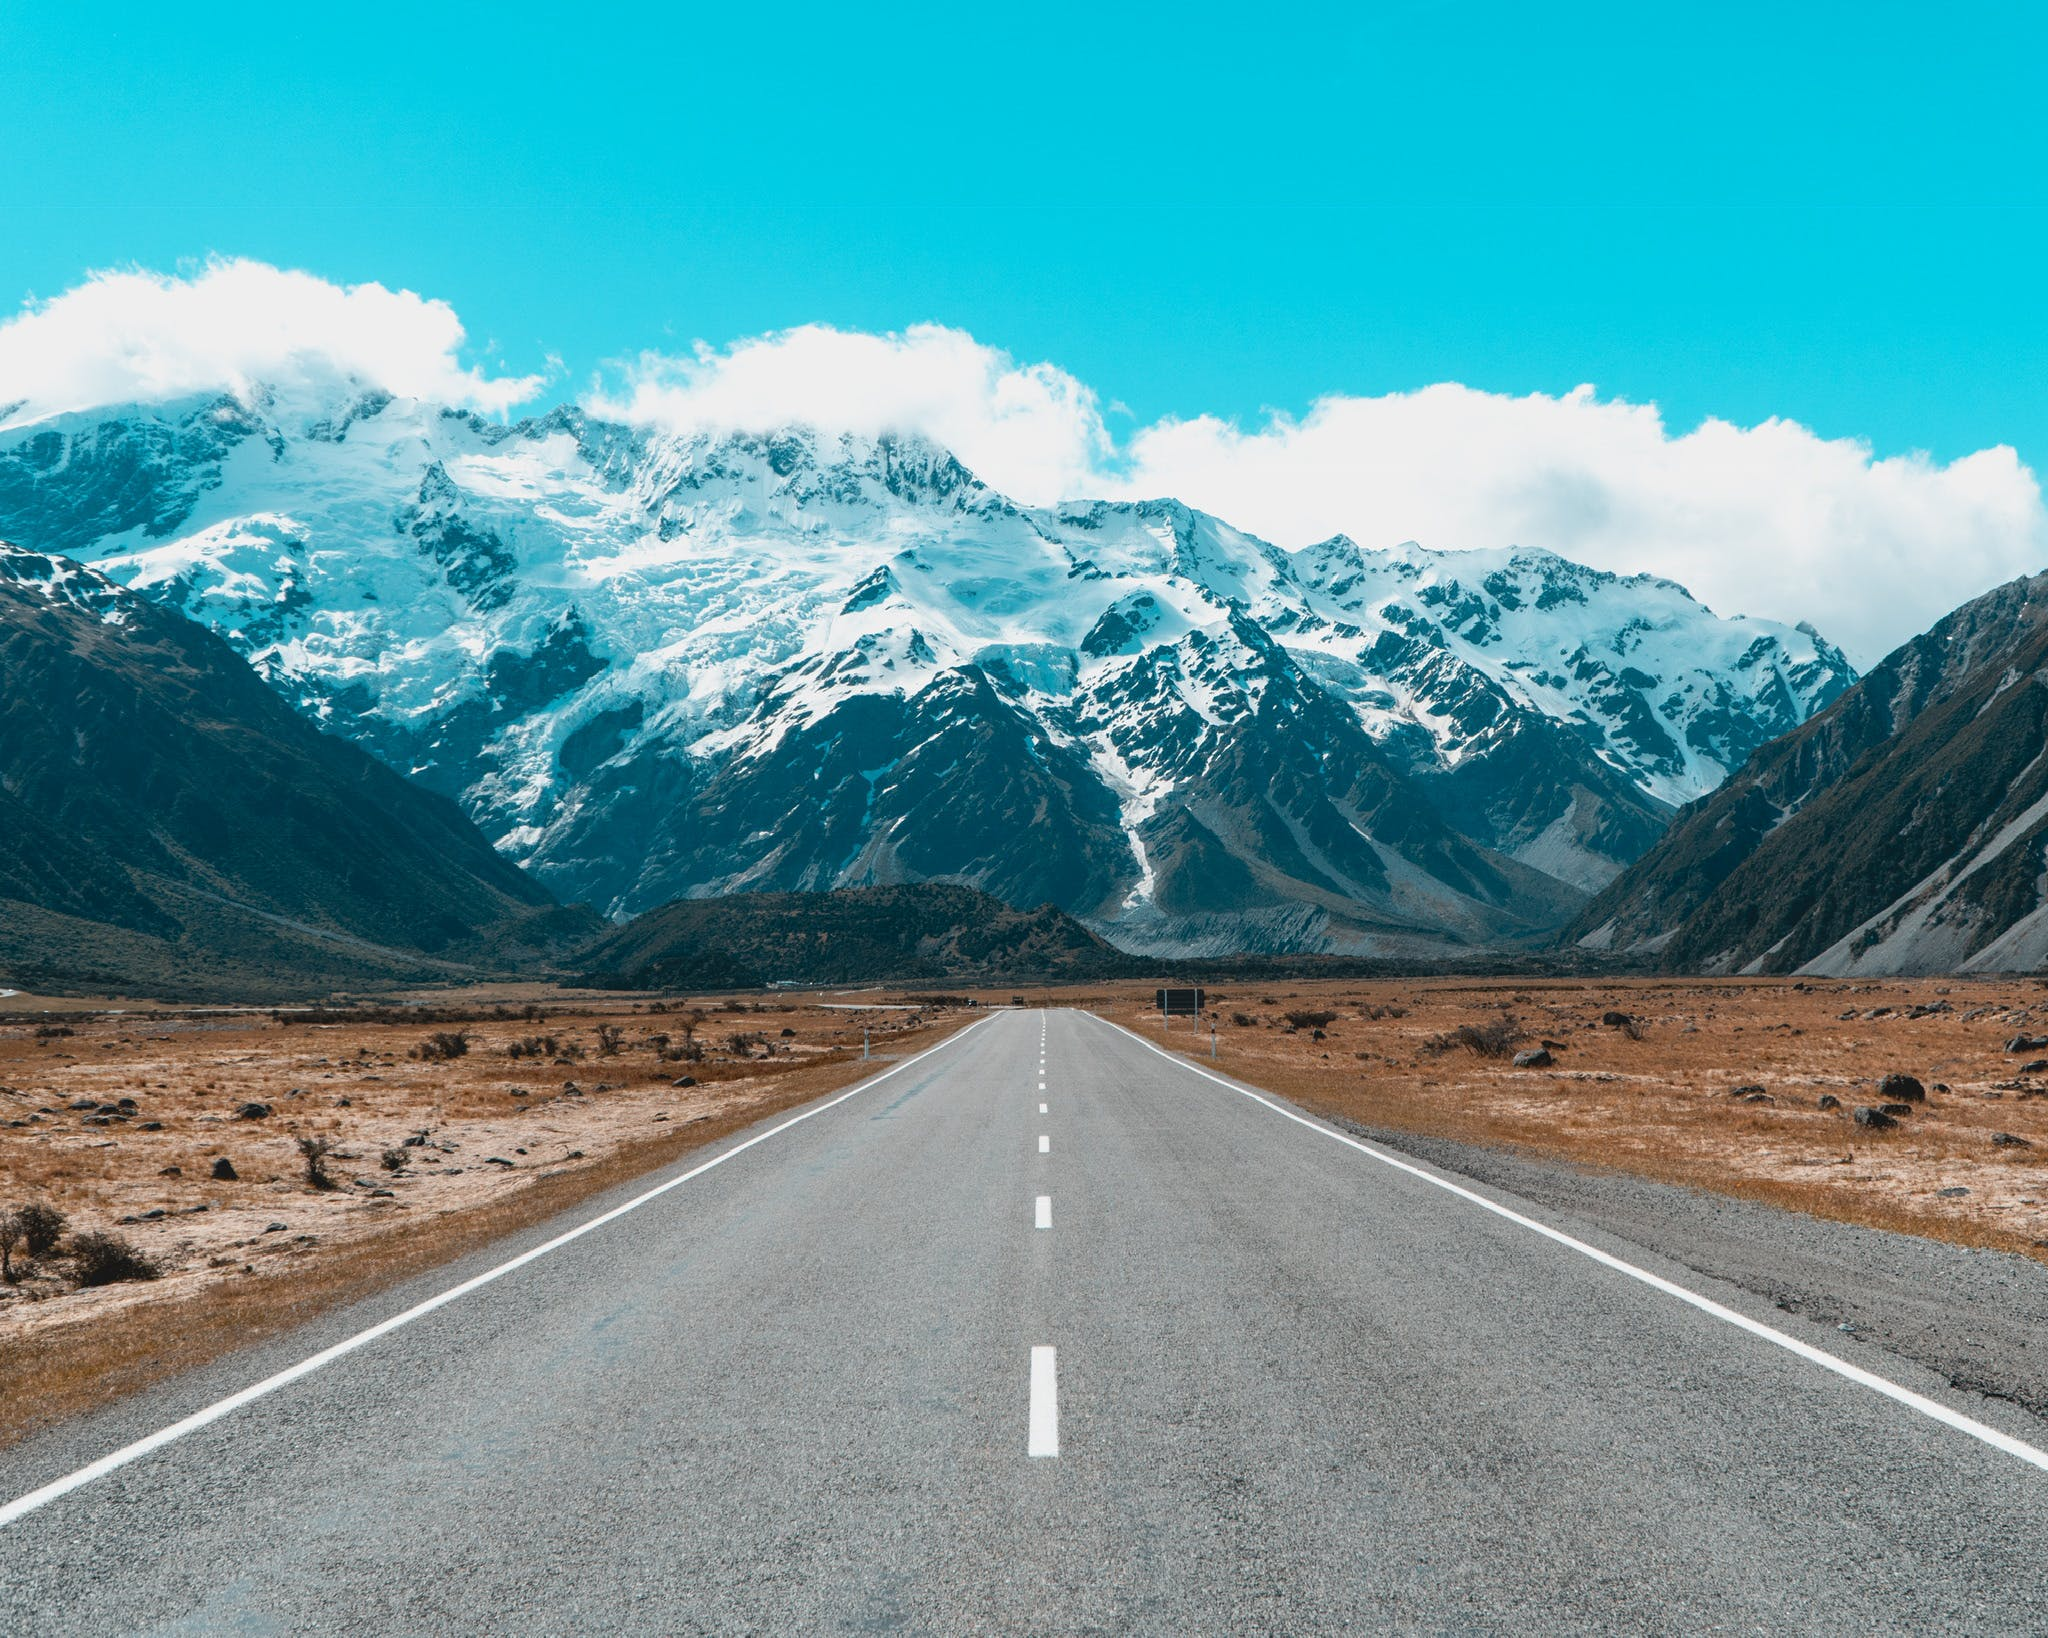 The road to Mount Cook / Aoraki